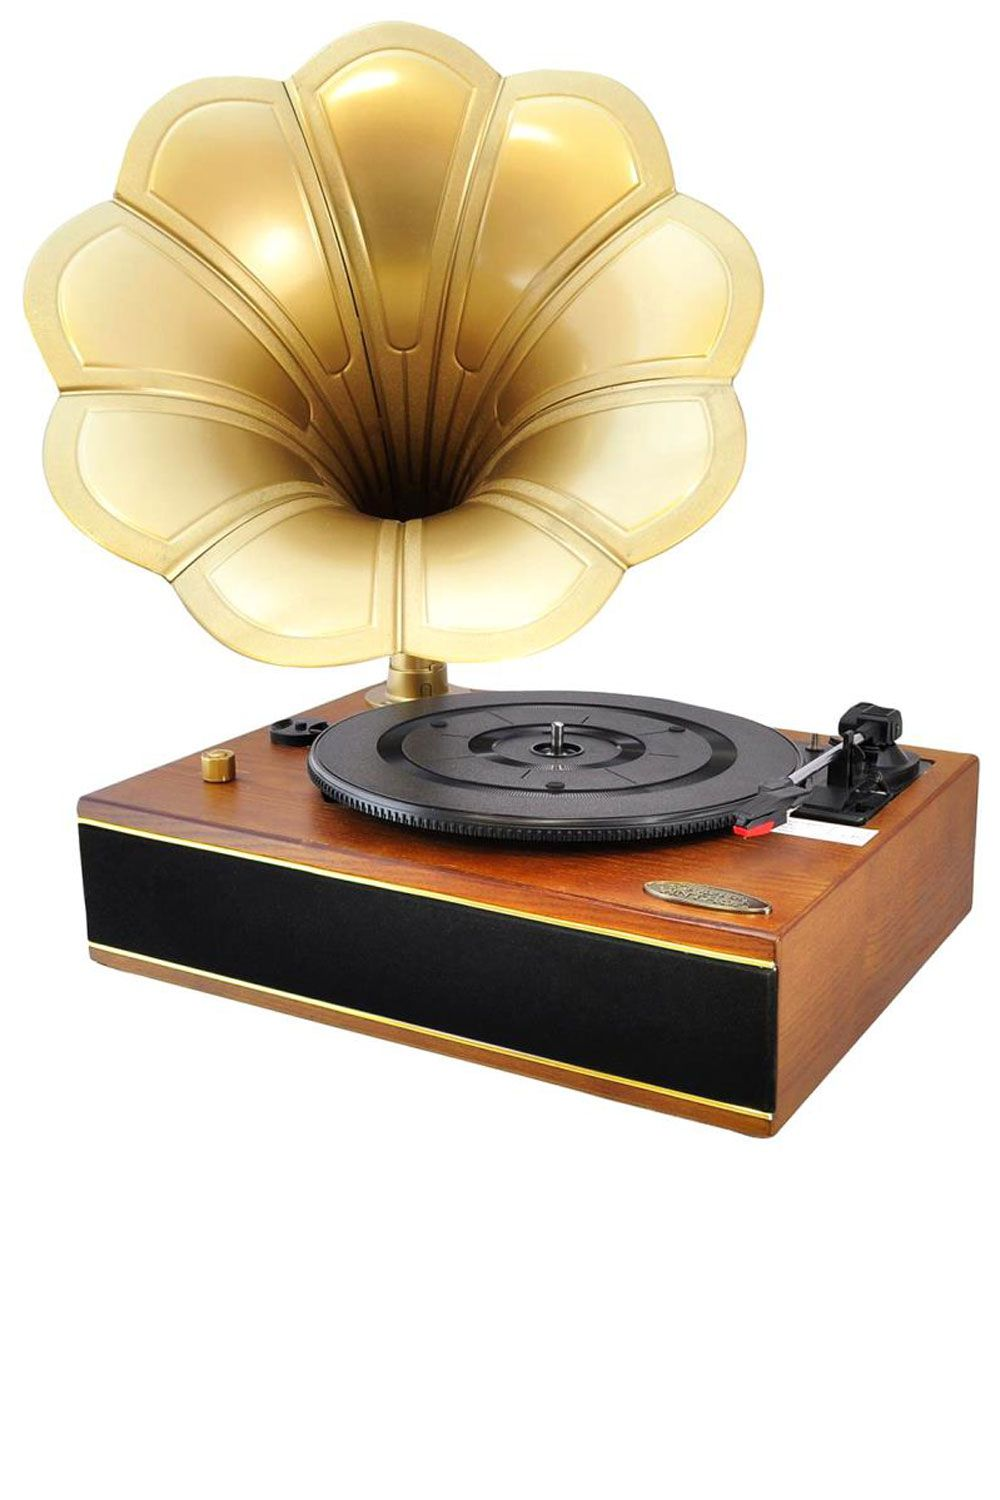 """<p><strong>Pyle</strong> turntable, $129, <a href=""""http://www.amazon.com/Pyle-PNGTT12RBT-Bluetooth-Gramophone-Phonograph/dp/B00YEH14FK/ref=sr_1_10?ie=UTF8&qid=1460748041&sr=8-10&keywords=pyle+record+player"""" target=""""_blank"""">amazon.com</a>.</p>"""